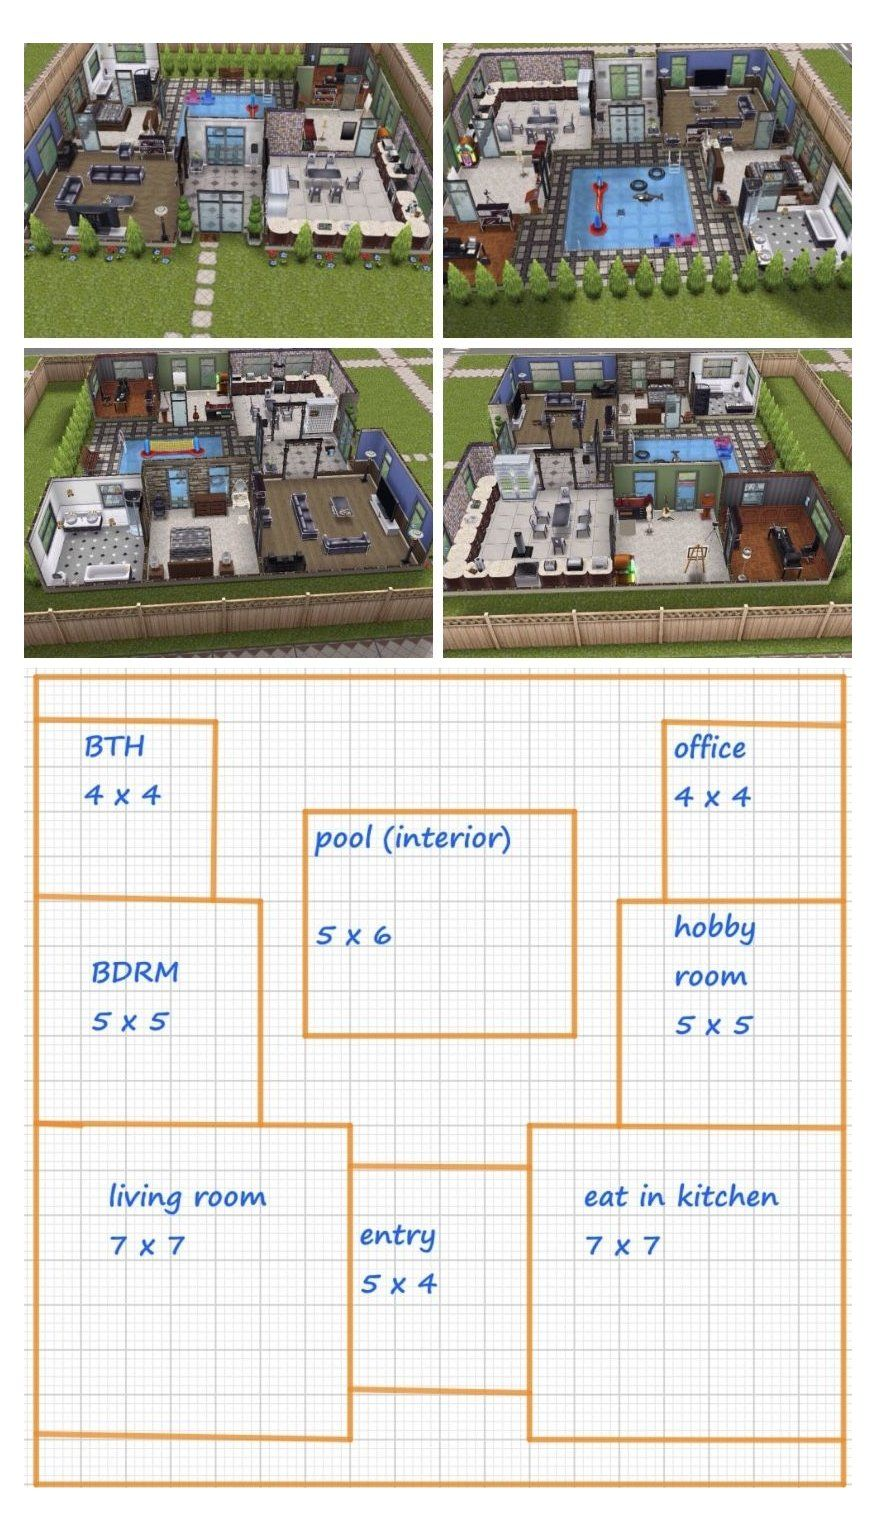 Sims Freeplay House Design Small Simple House Design Smallsimplehousedesign Sims Freeplay Houses Sims 4 House Plans Sims House Design